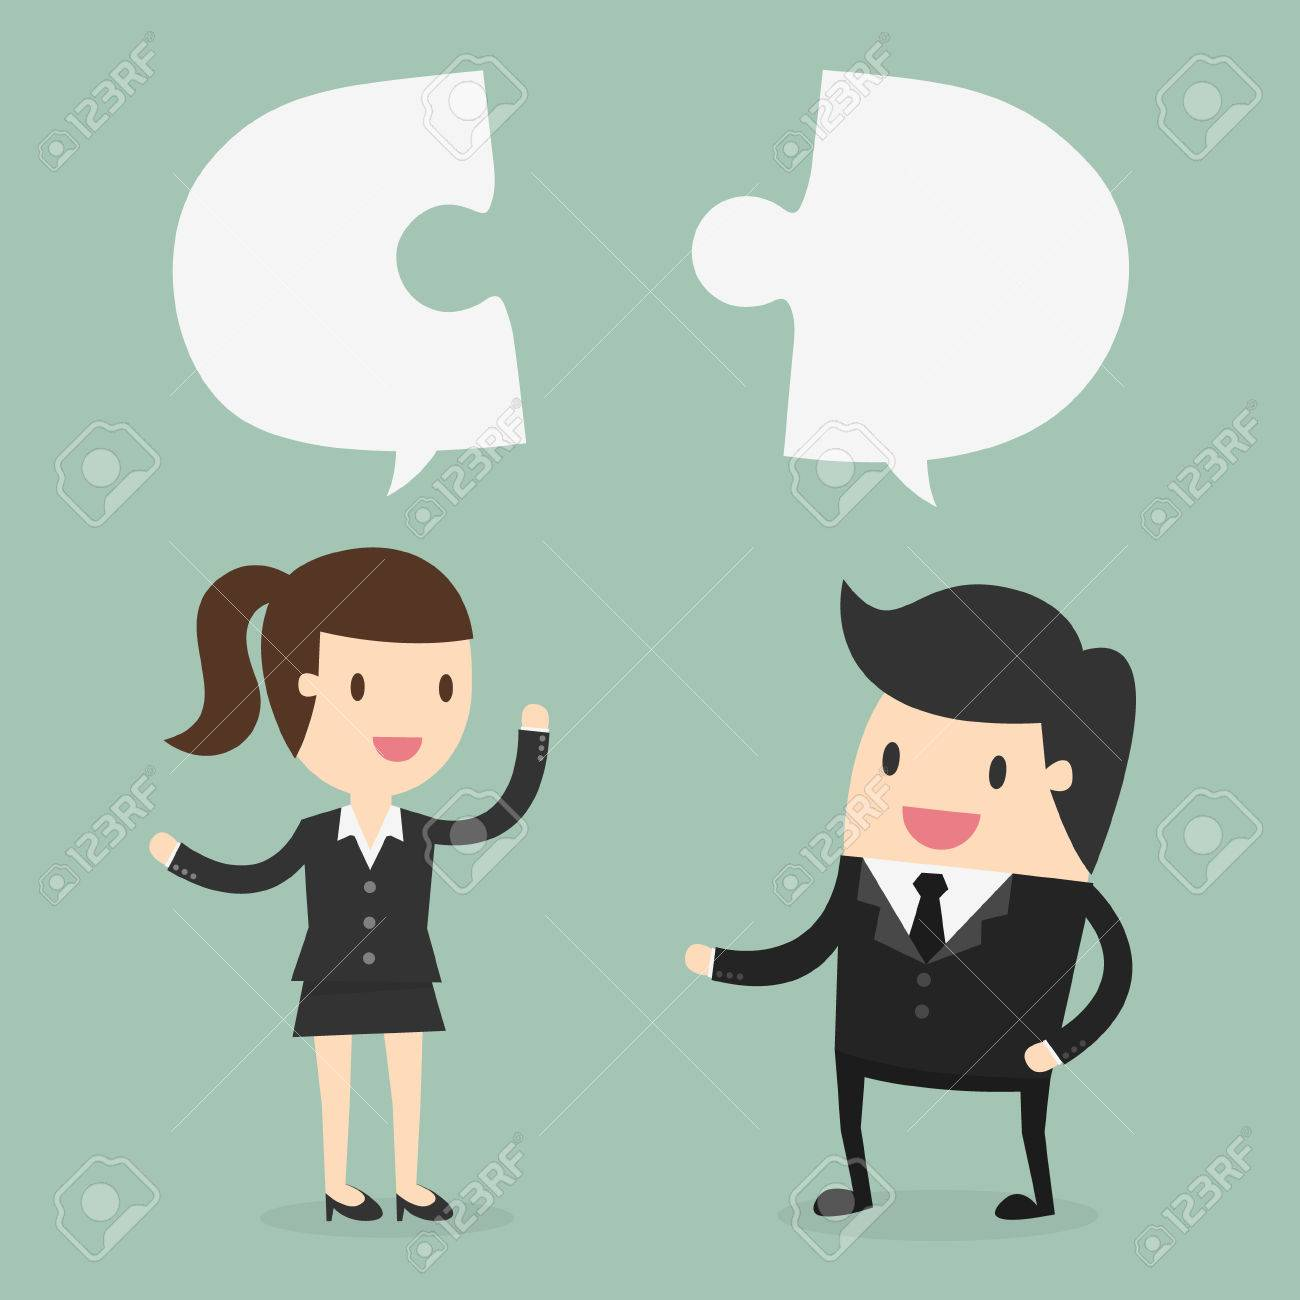 businessman and Business woman discuss their work - 53139109